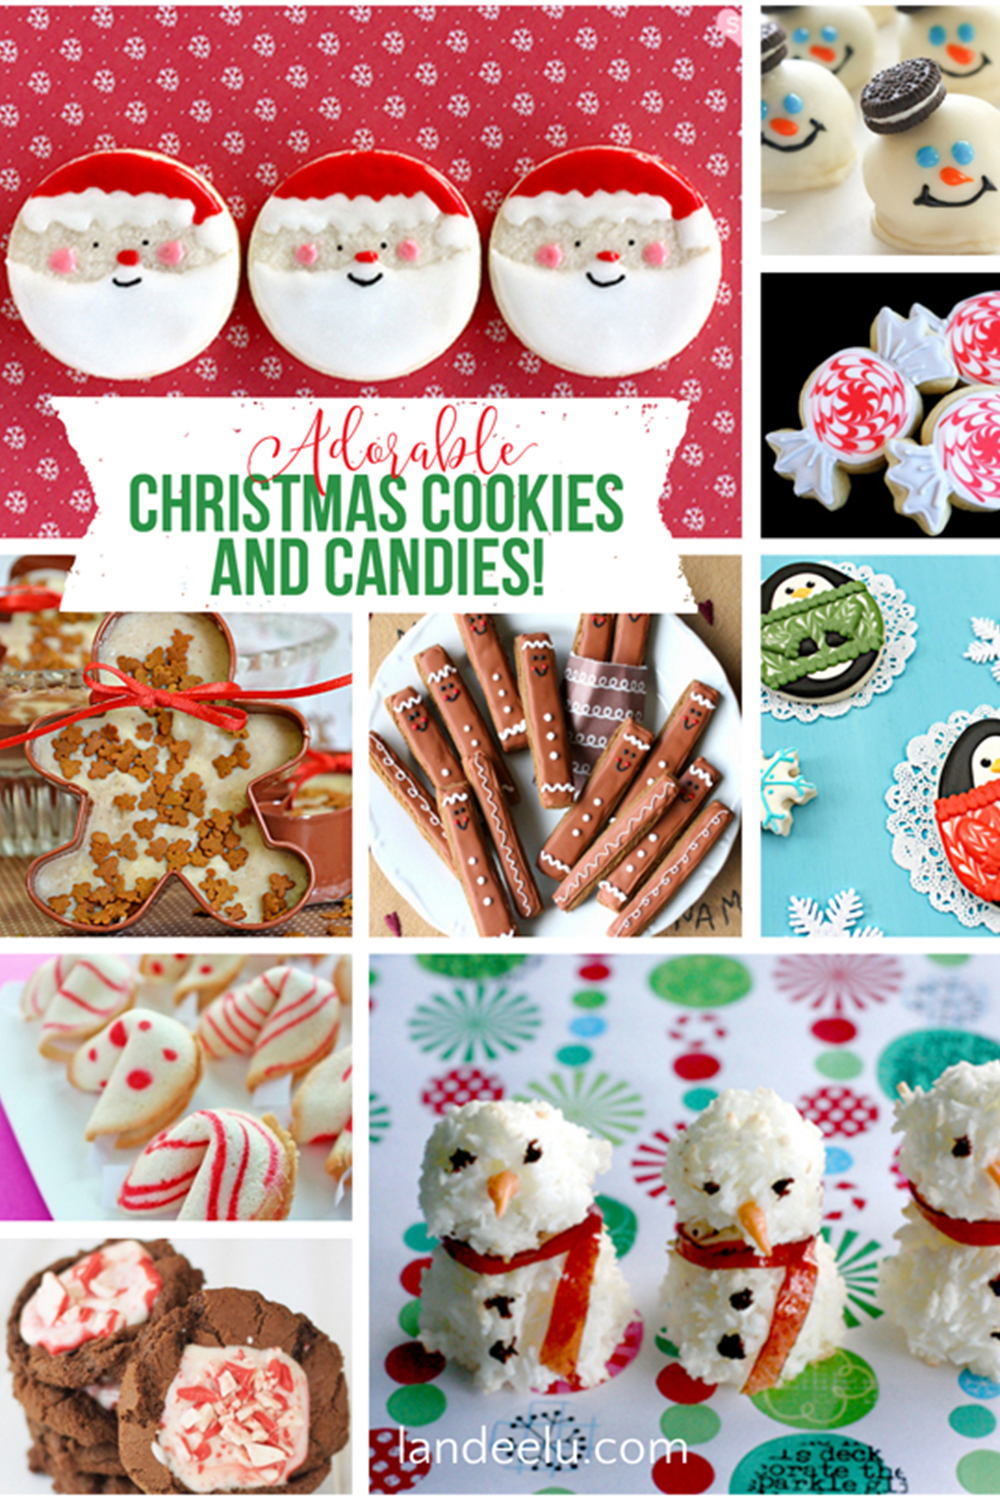 Christmas Cookies!! So many great ideas for neighbor gifts and cookie exchanges! #christmascookies #christmascandy #homemadecookies #christmasgoodies